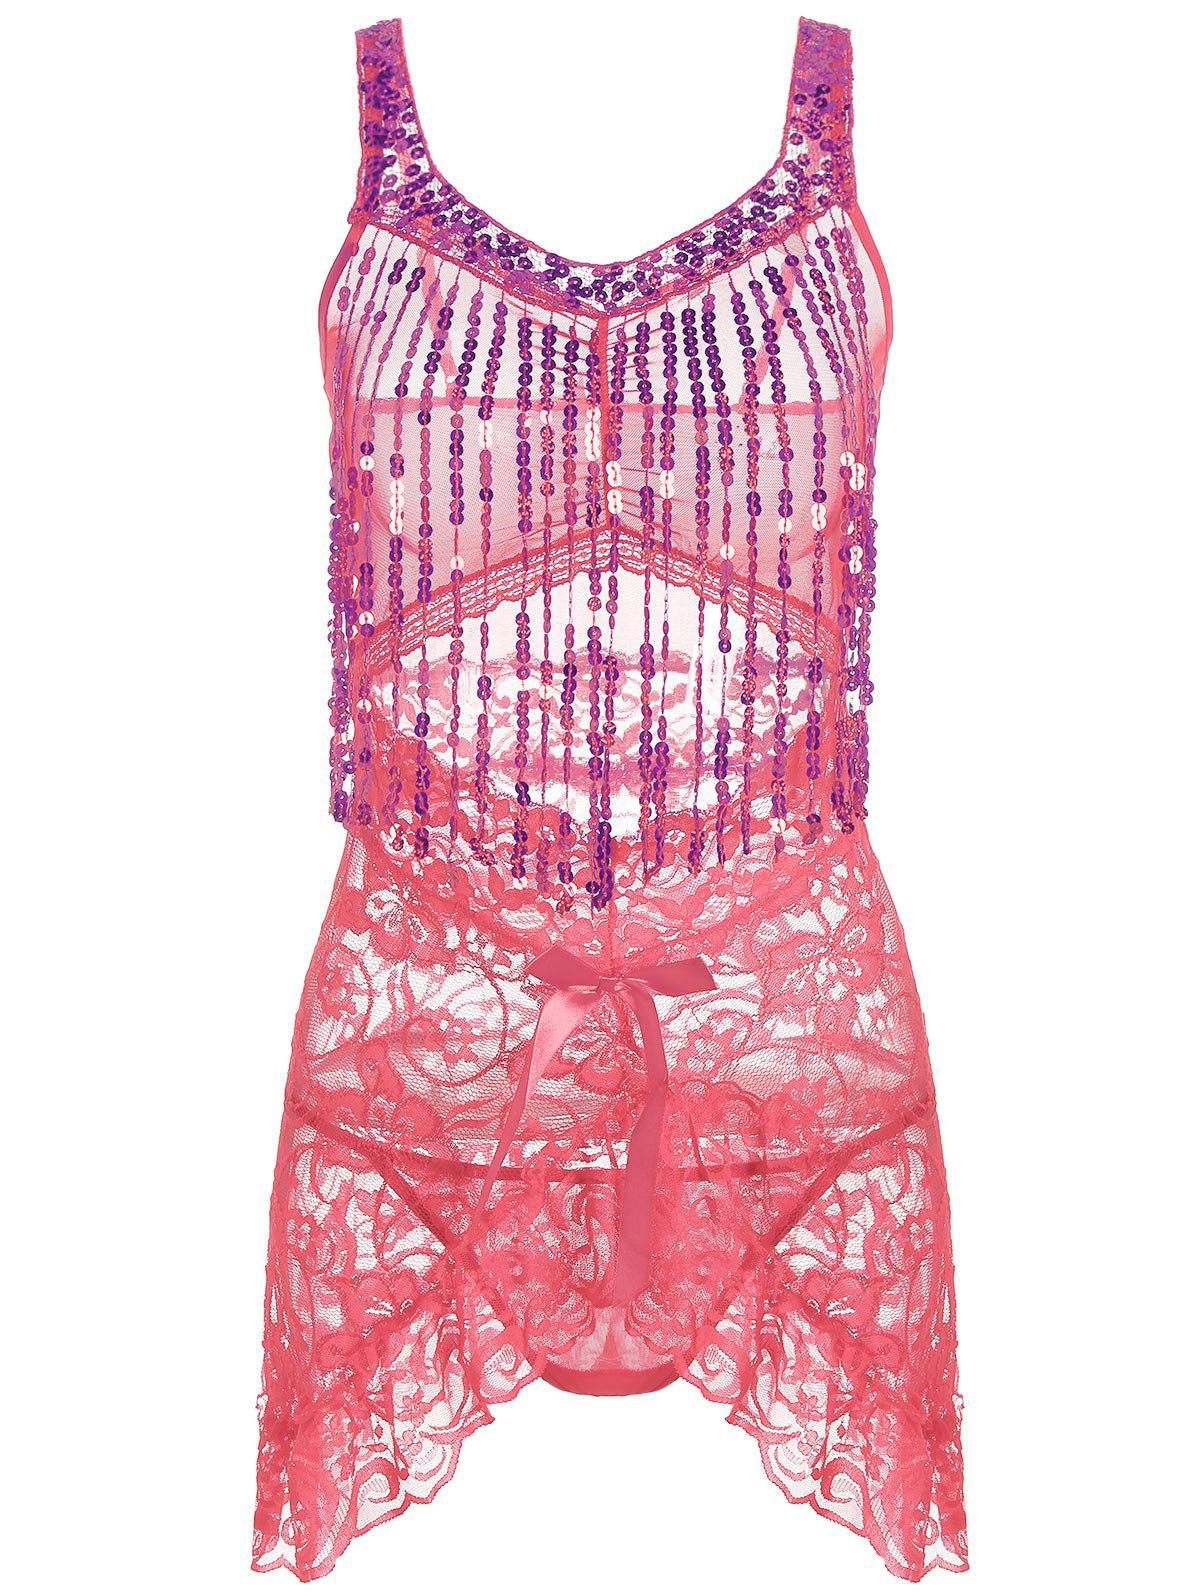 Lace Sequins Fringe Sheer Babydoll - DEEP PINK ONE SIZE